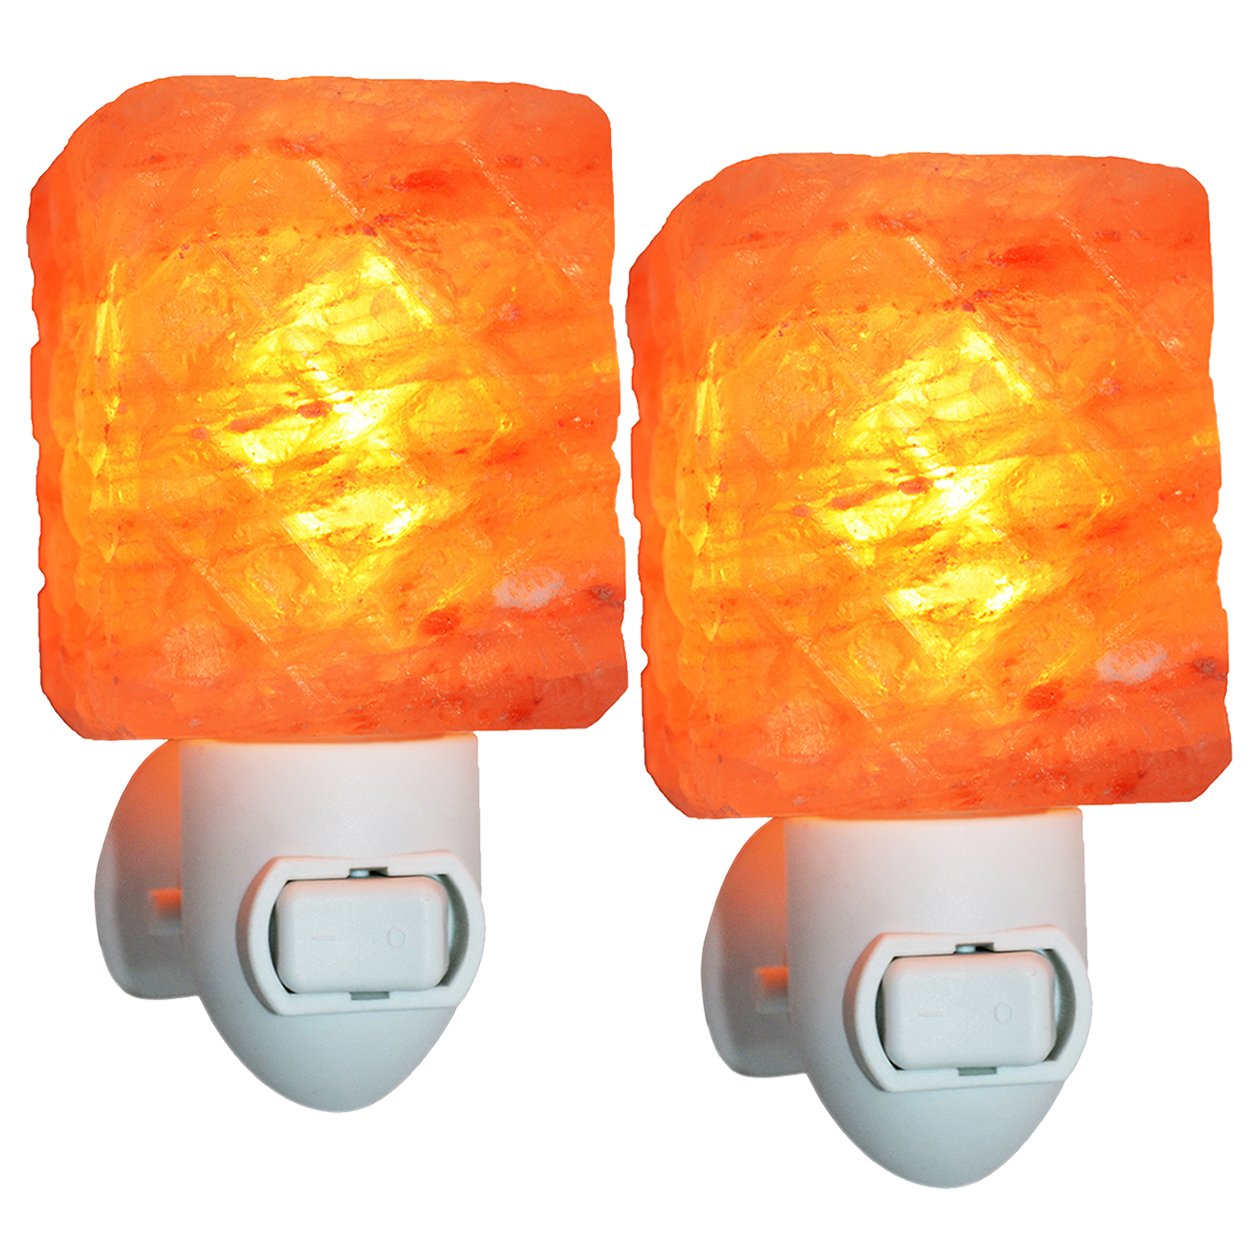 Maymii•Home 2 Pack Carved Cube Mini Himalayan Salt Night Light Lamps Plug in Wall Night Light Crystal Salt Lamp Natural Air Purifier and Soft Night Light for Living Dining Bed Room and Office